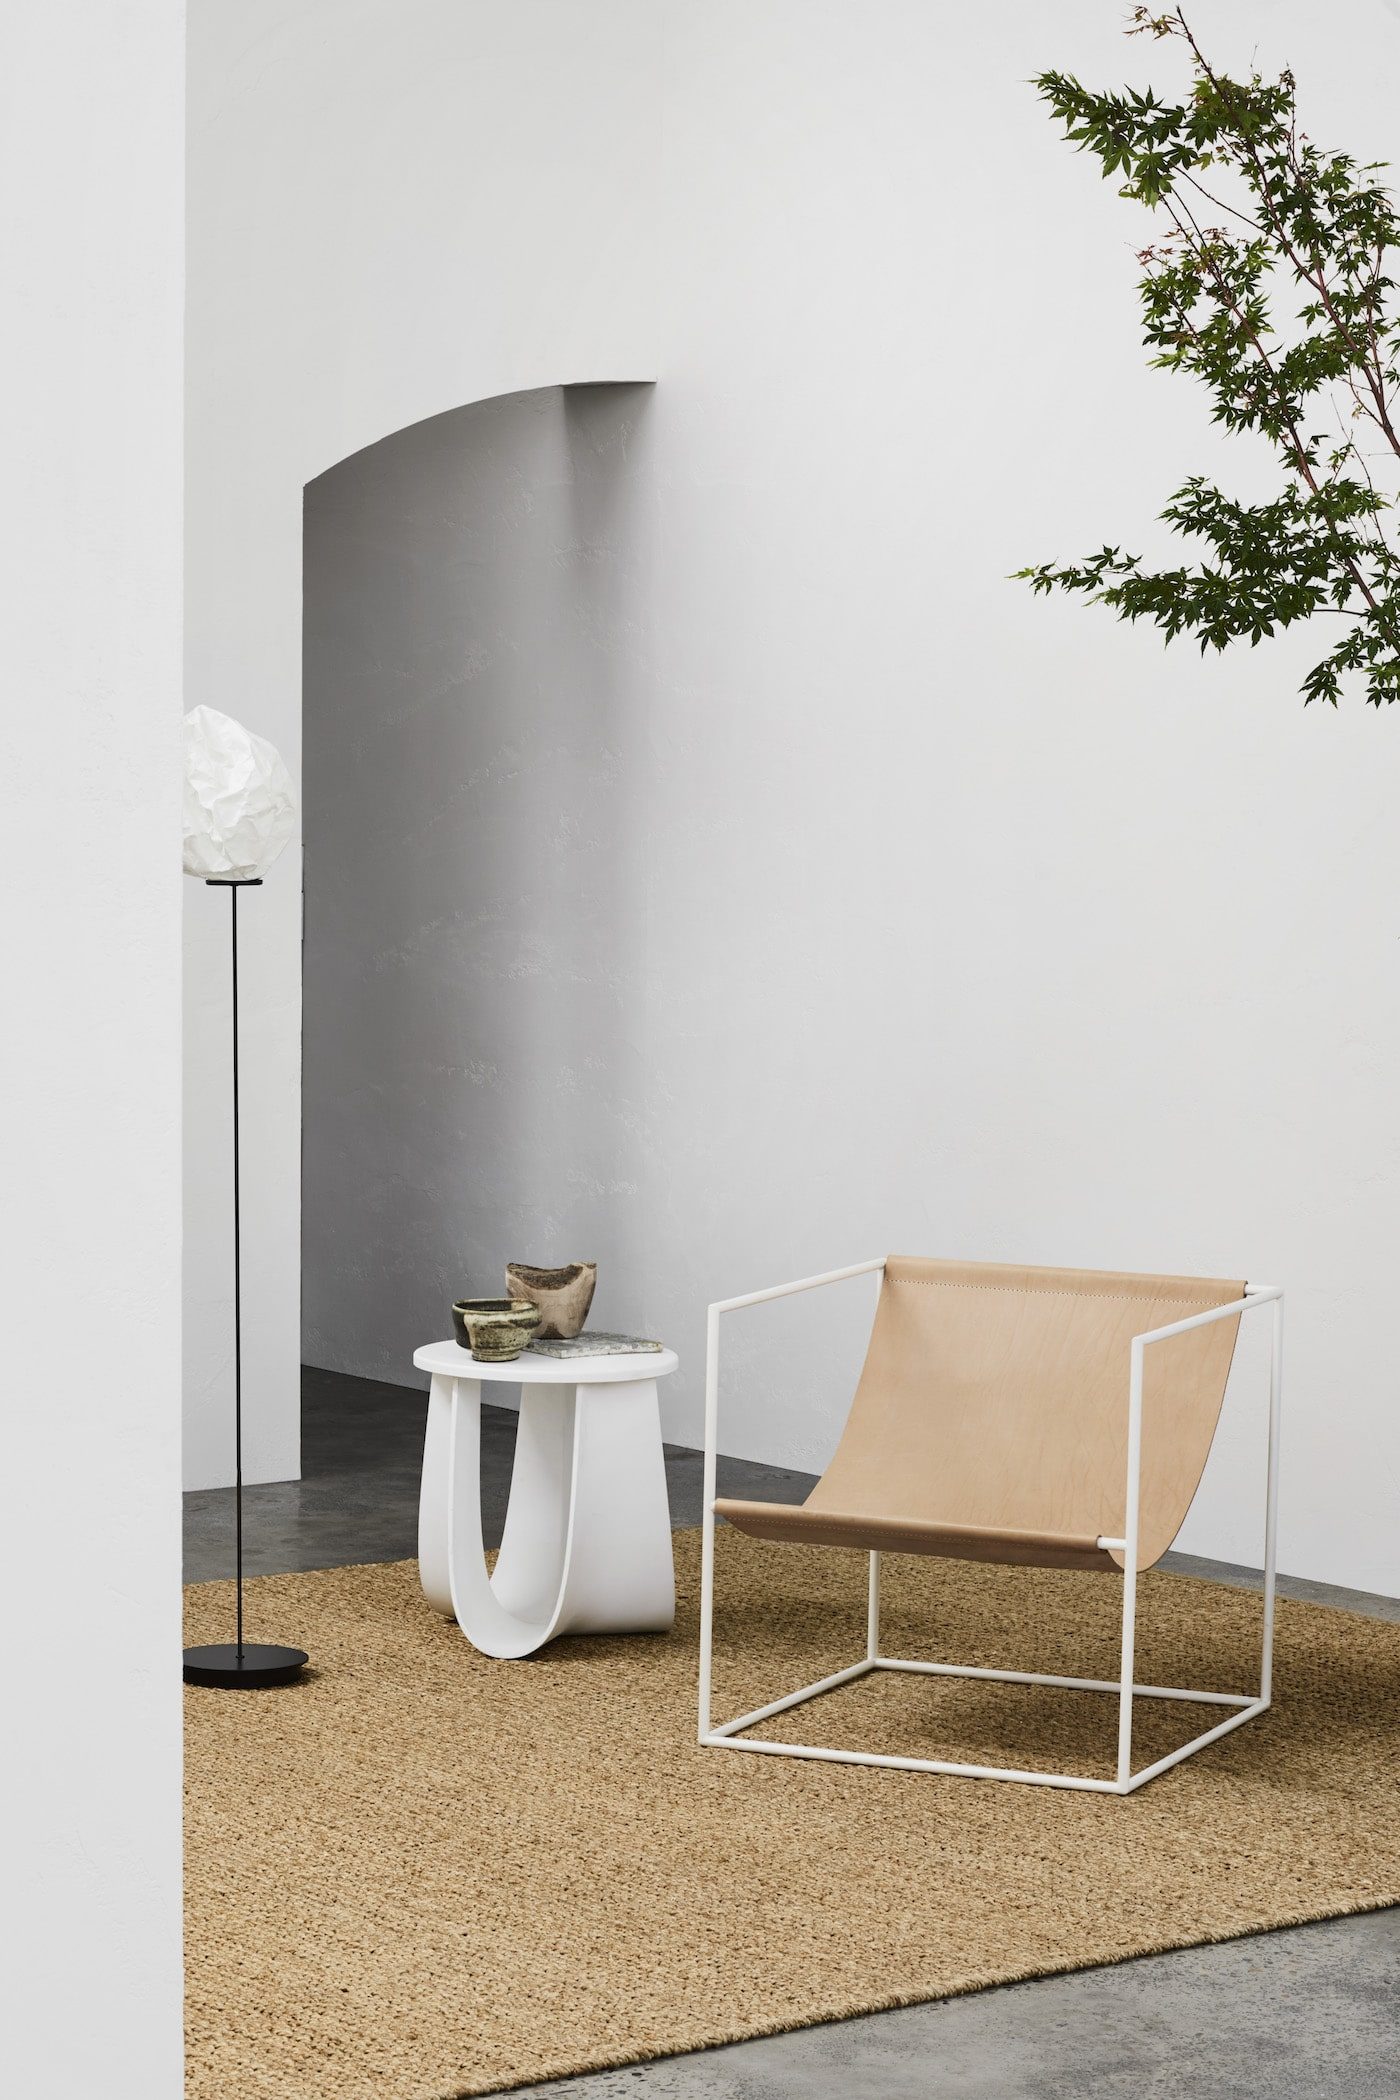 Jute rug on concrete floor and white walls